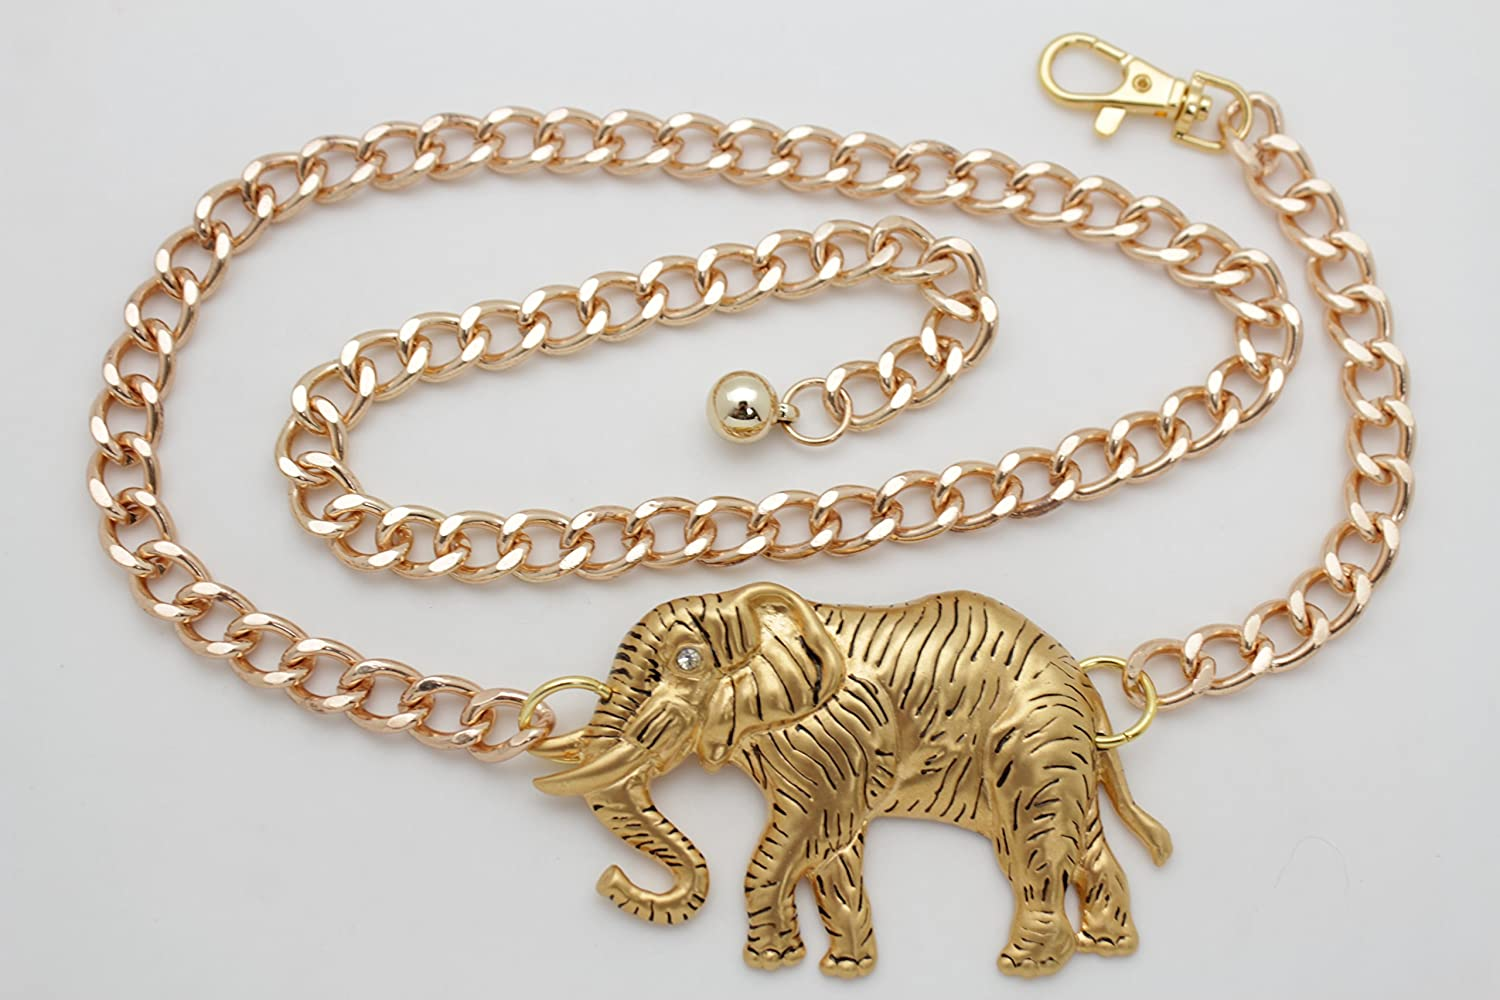 TFJ Women Gold Metal Chain Links Belt Hip High Waist Big Elephant Charm Buckle XS S M